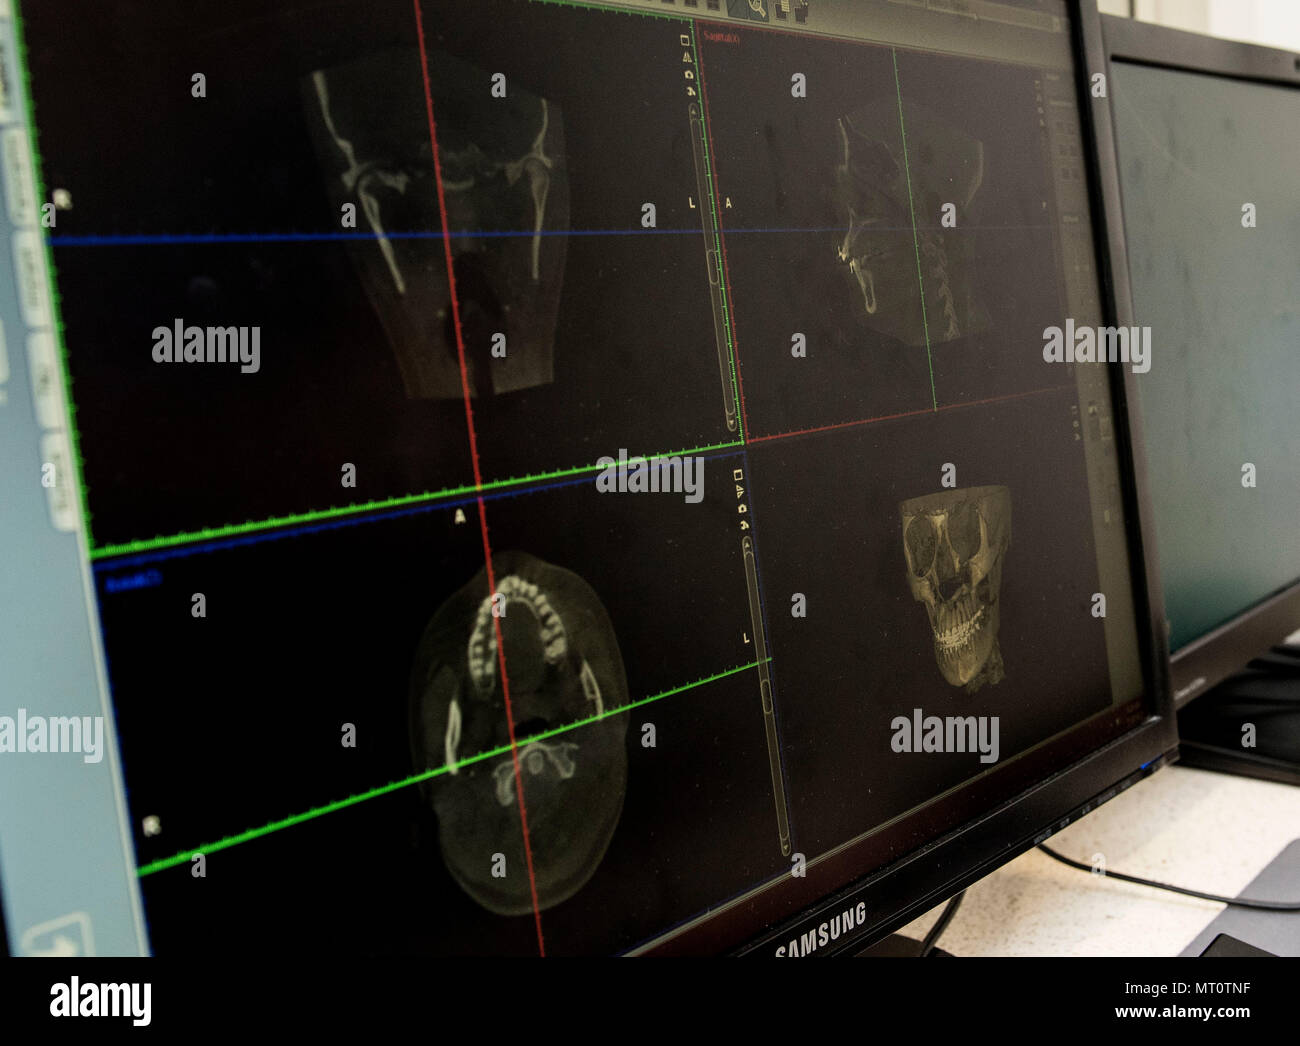 Images from a dental cone-beam computed tomography machine are displayed on a monitor, July. 14, 2017 at David Grant USAF Medical Center, Travis Air Force Base, Calif. These X-ray images give doctors the ability to observe and manipulate a fully 3 dimensional scan of the skull and teeth of a patient, precisely pinpointing problem areas. Care offered at the 60th Dental Squadron includes general dentistry, periodontics, orthodontics, endodontics, pediatric dentistry, prosthodontics, oral and maxillofacial surgery. (U.S. Air Force photo by Heide Couch) - Stock Image